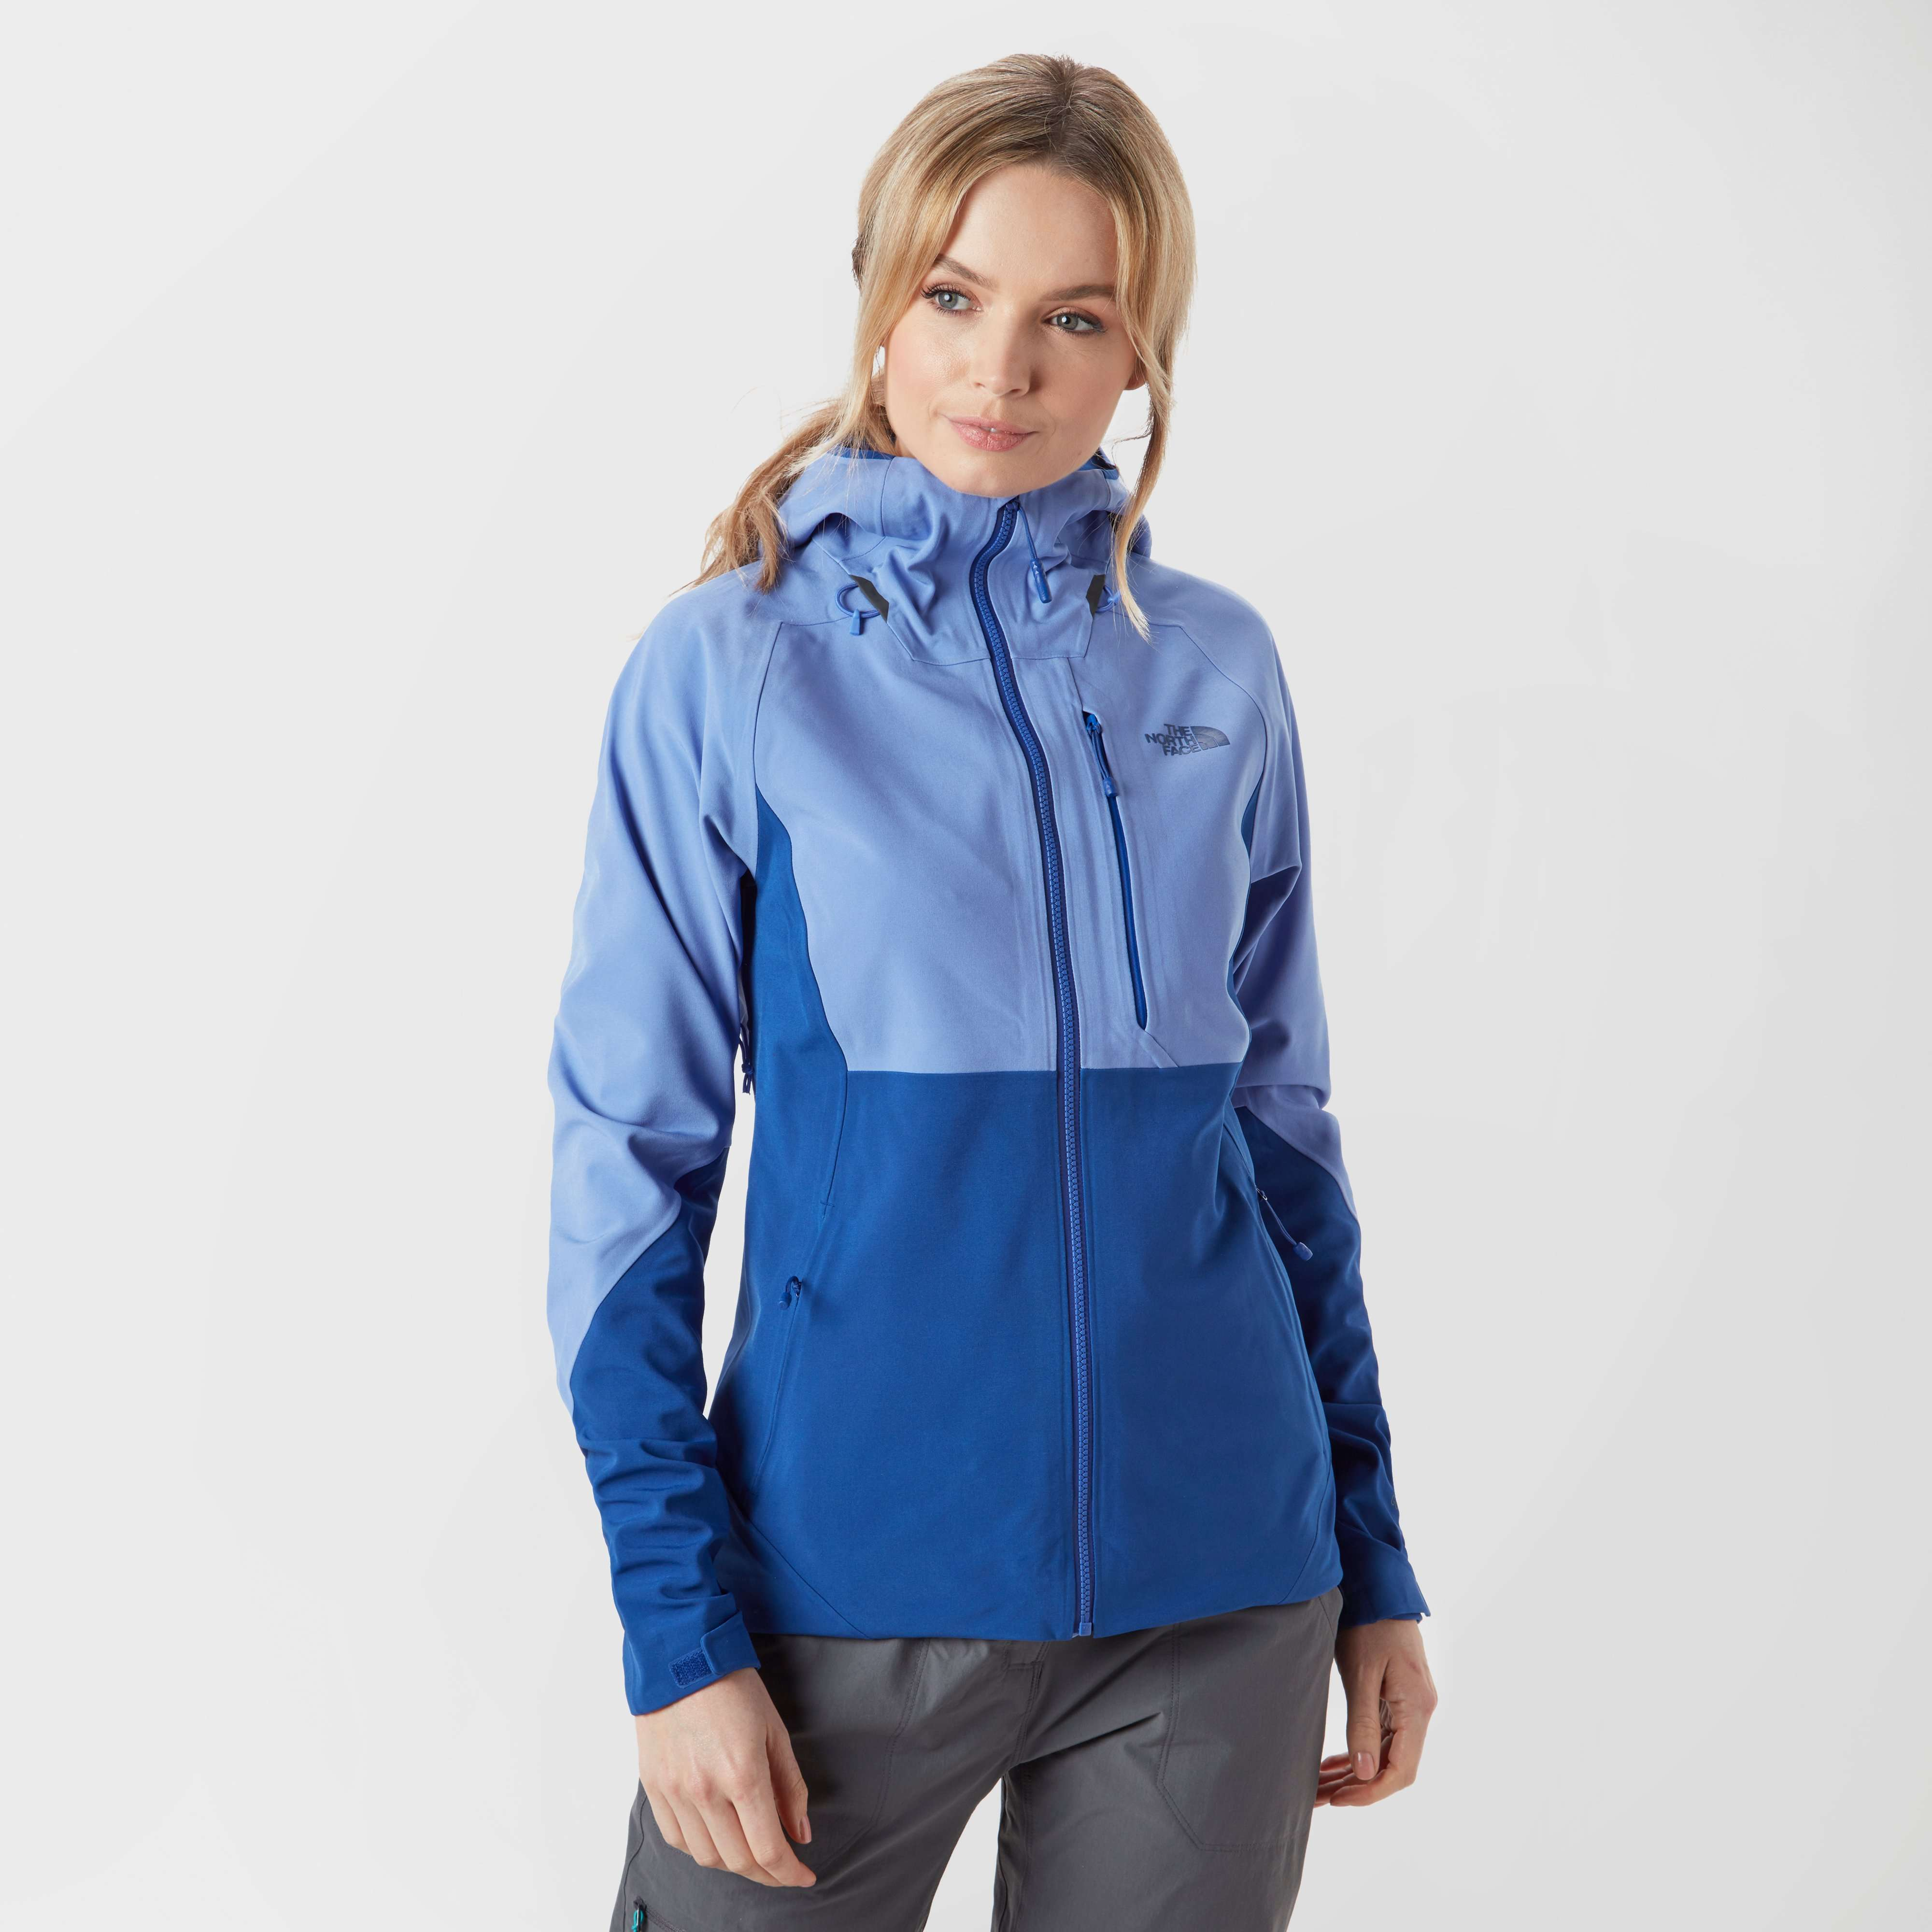 THE NORTH FACE Women's Apex Flex GORE-TEX® 2.0 Softshell Jacket